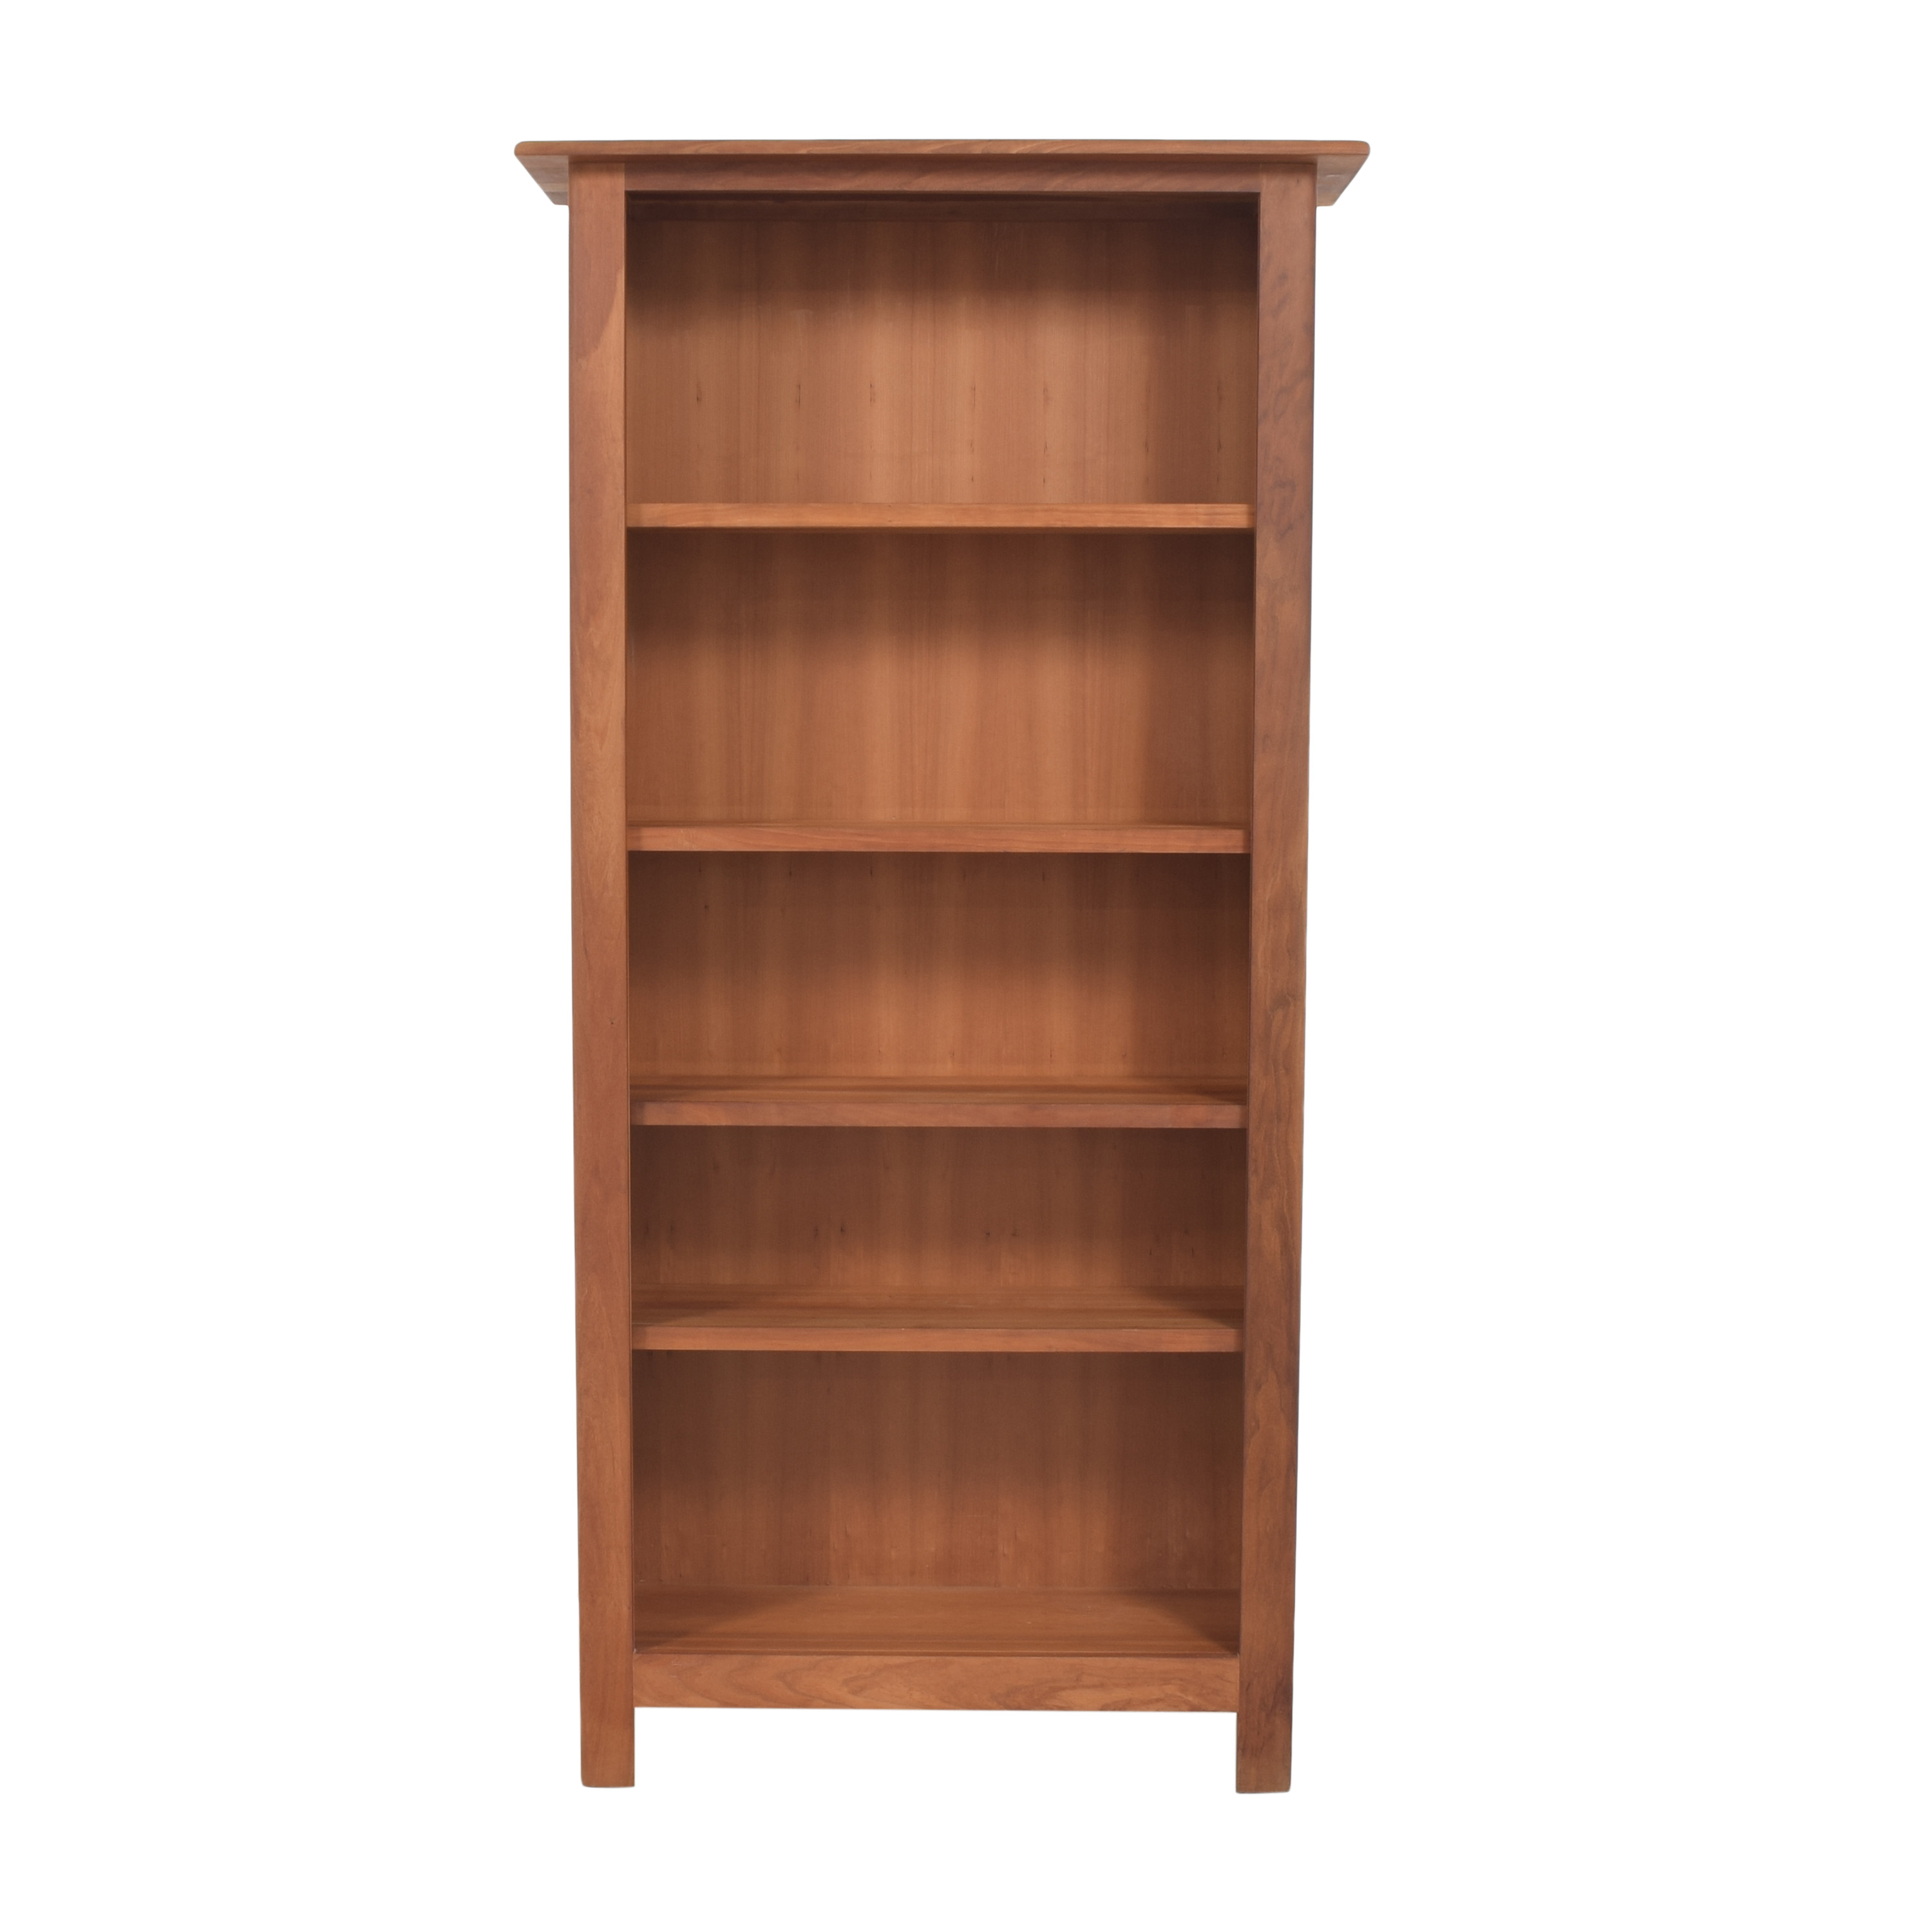 shop Scott Jordan Furniture Tall Bookcase Scott Jordan Furniture Bookcases & Shelving